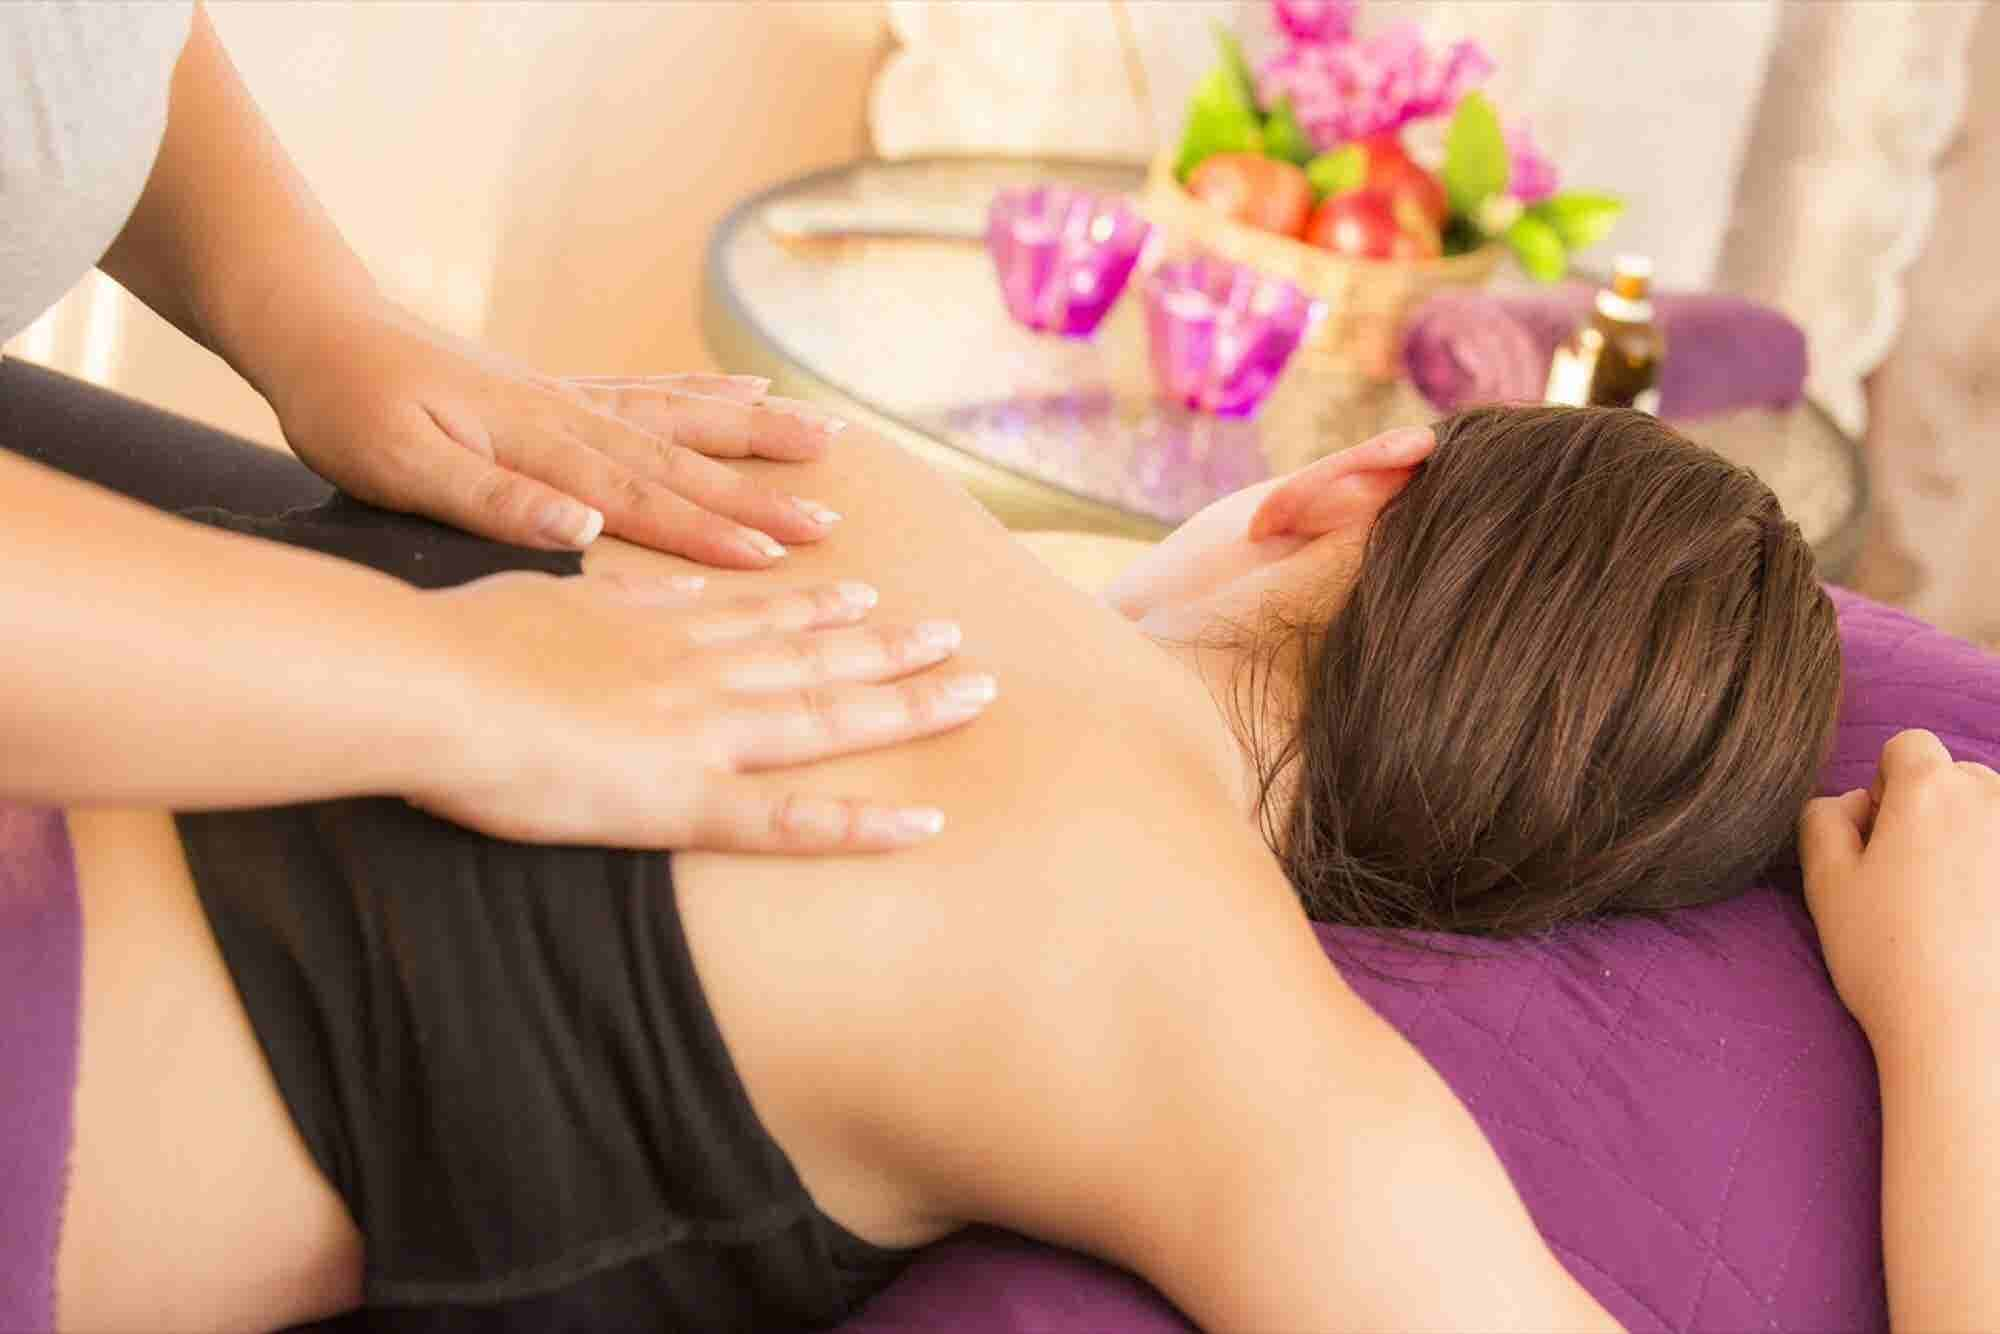 Is the Wellness Industry in the Pink of Health?